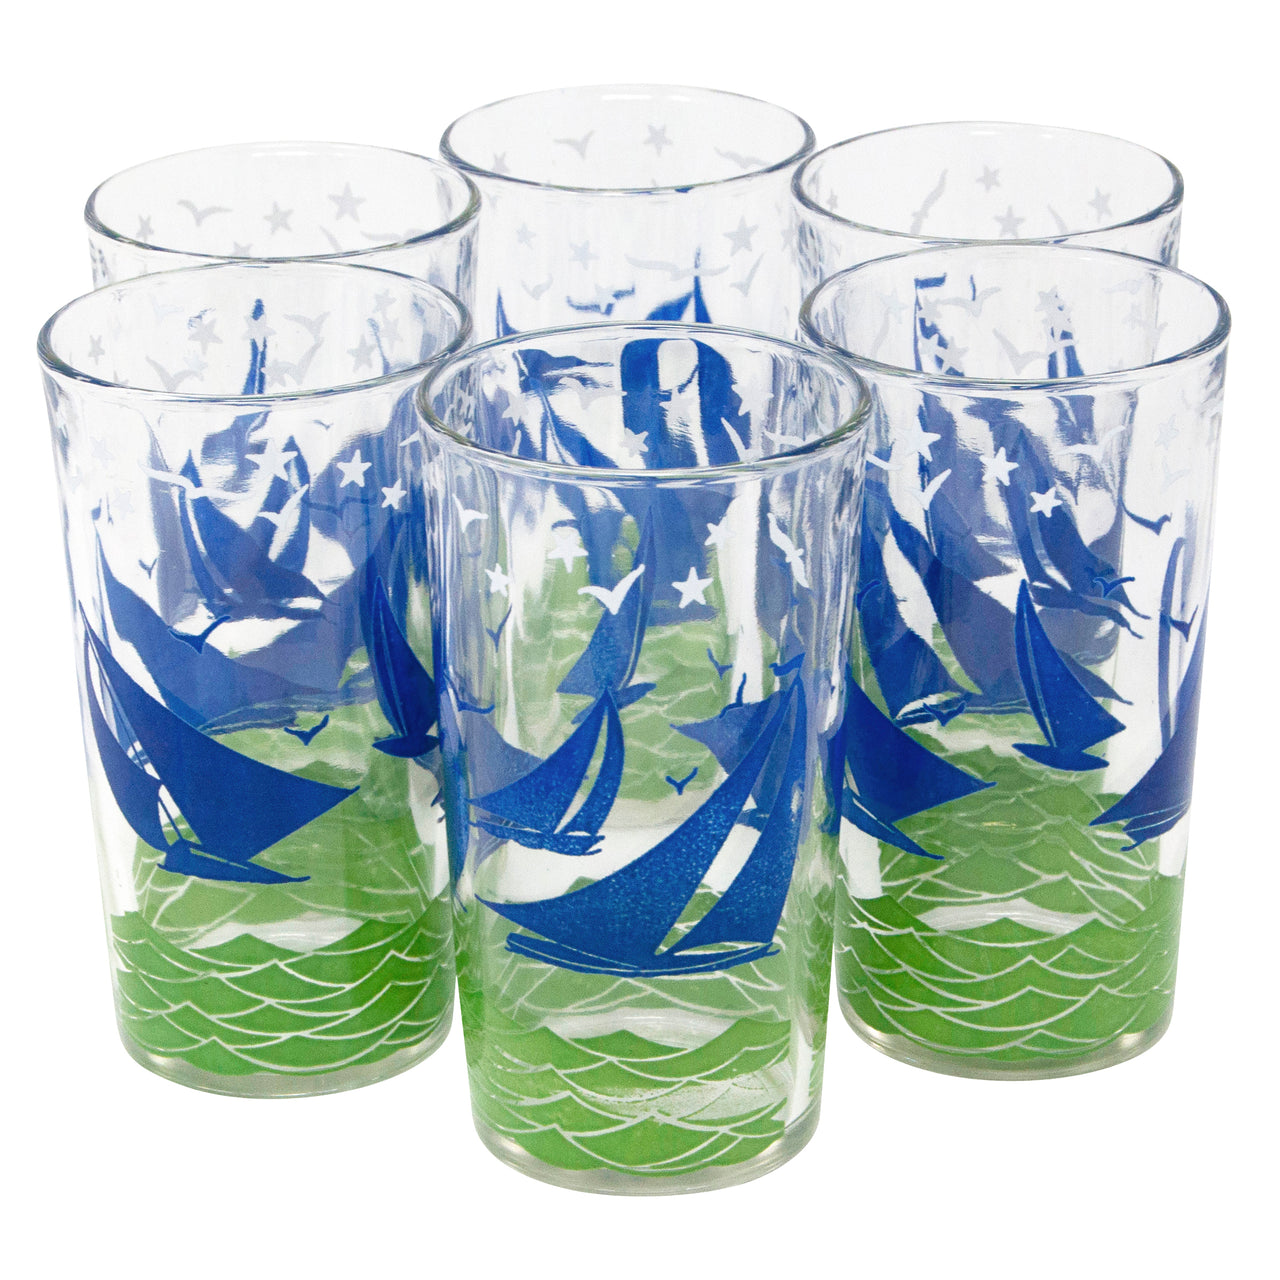 Blue and Green Sailboat Tumblers | The Hour Shop